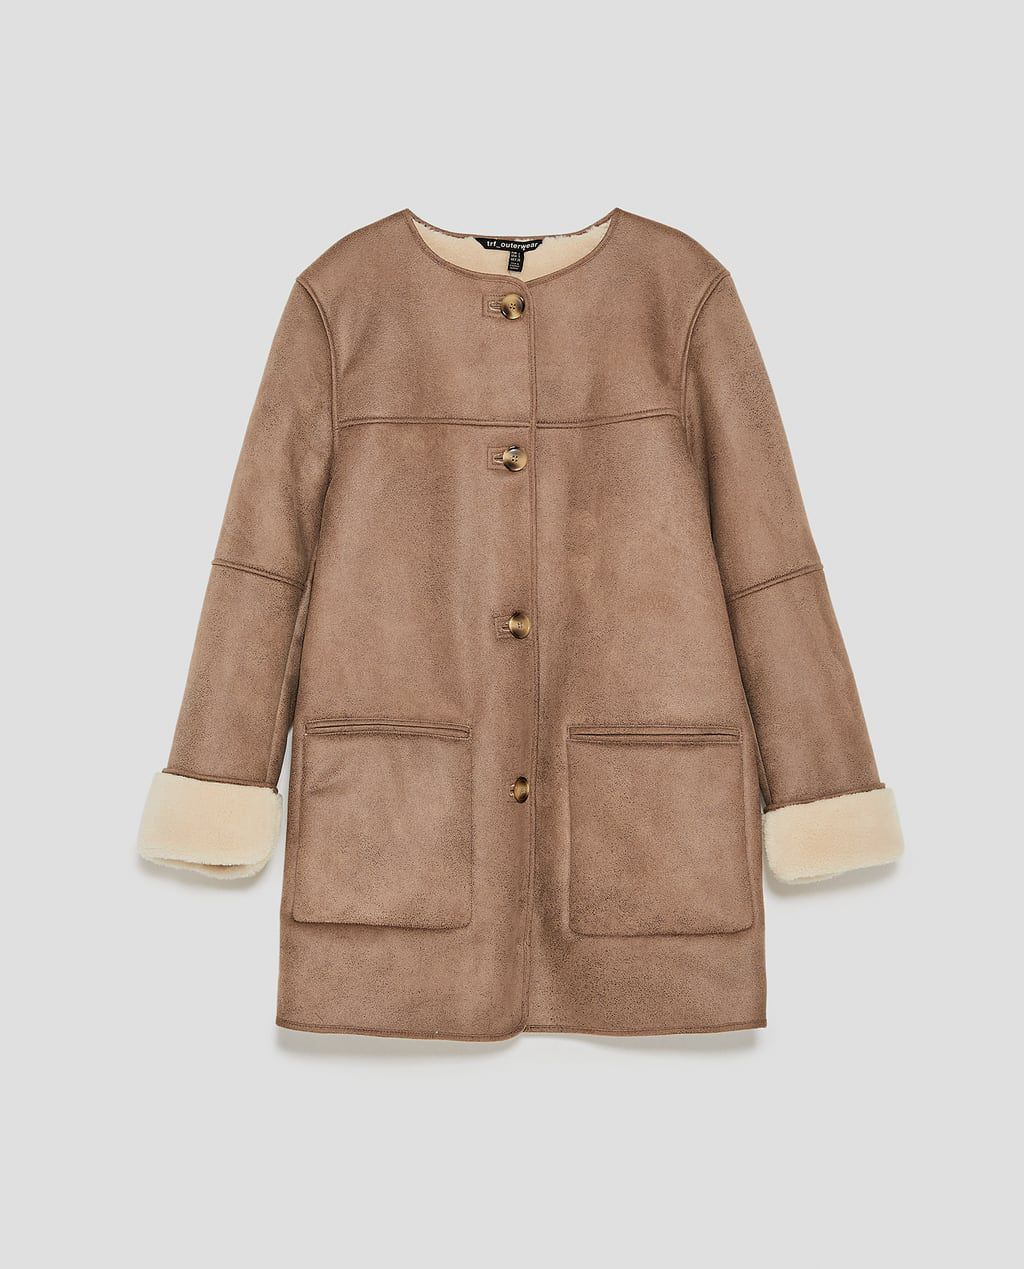 A faux shearling and suede coat